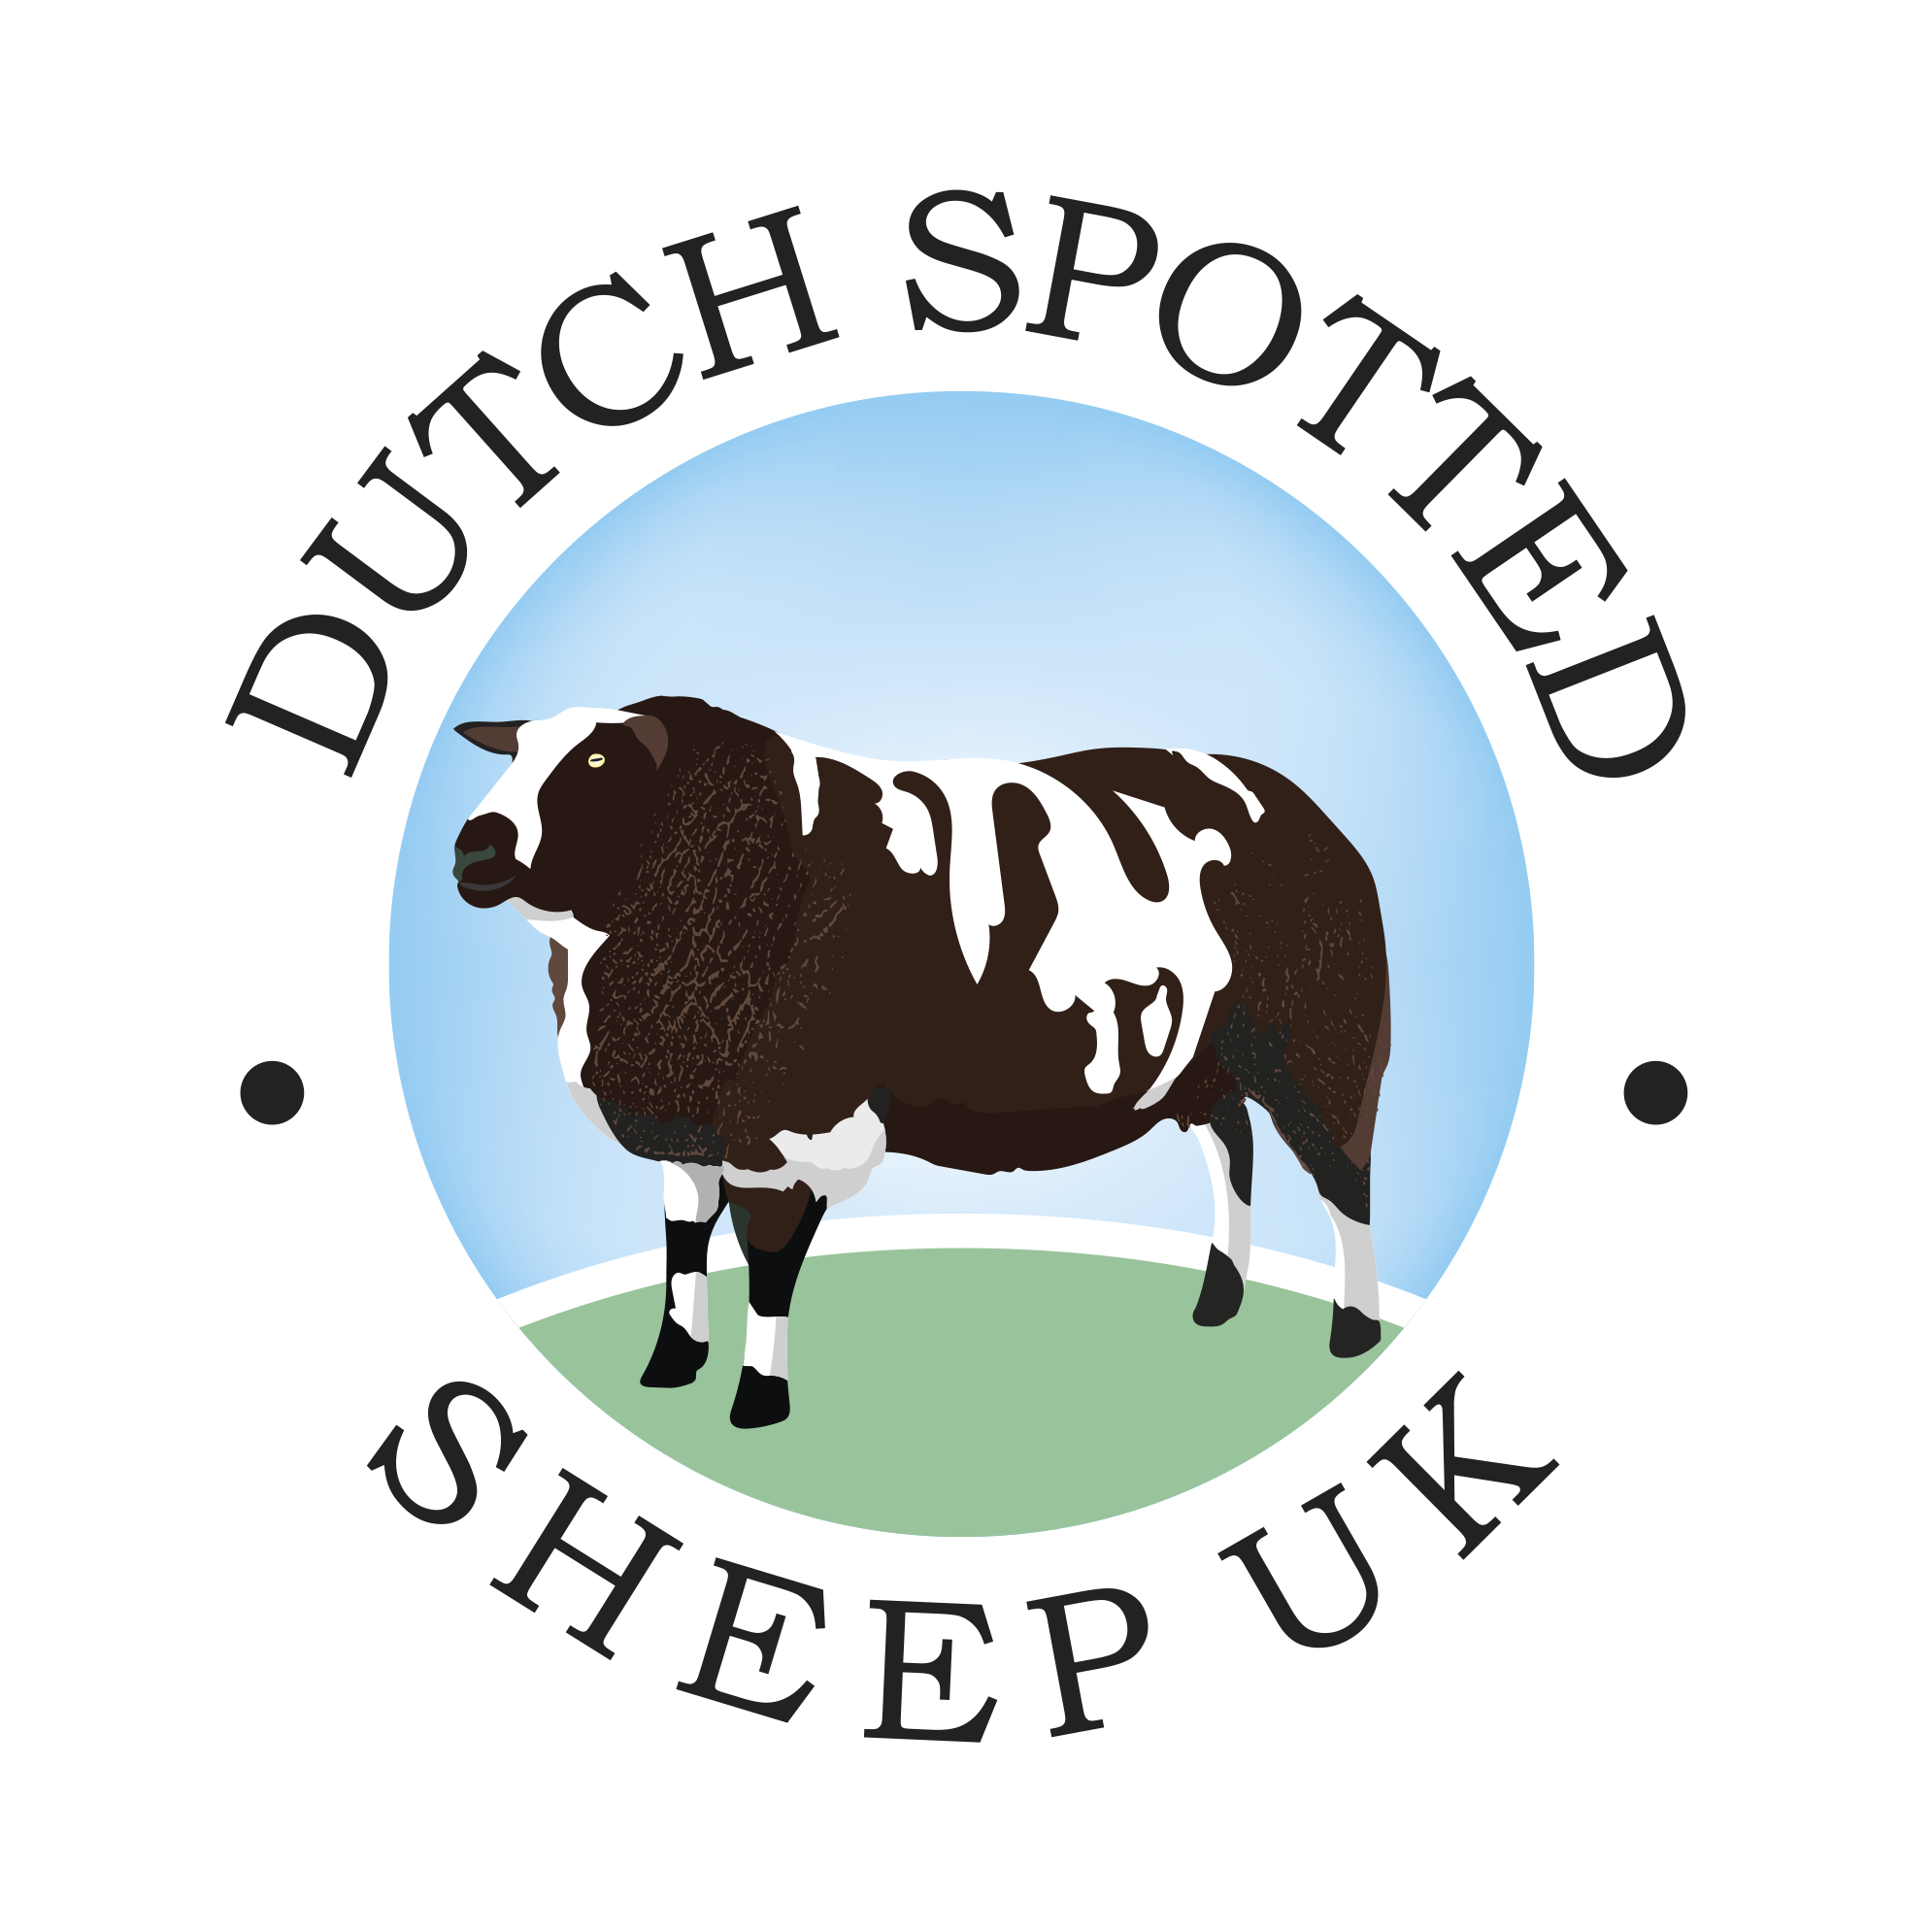 Sheep clipart shee. Dutch spotted uk solway